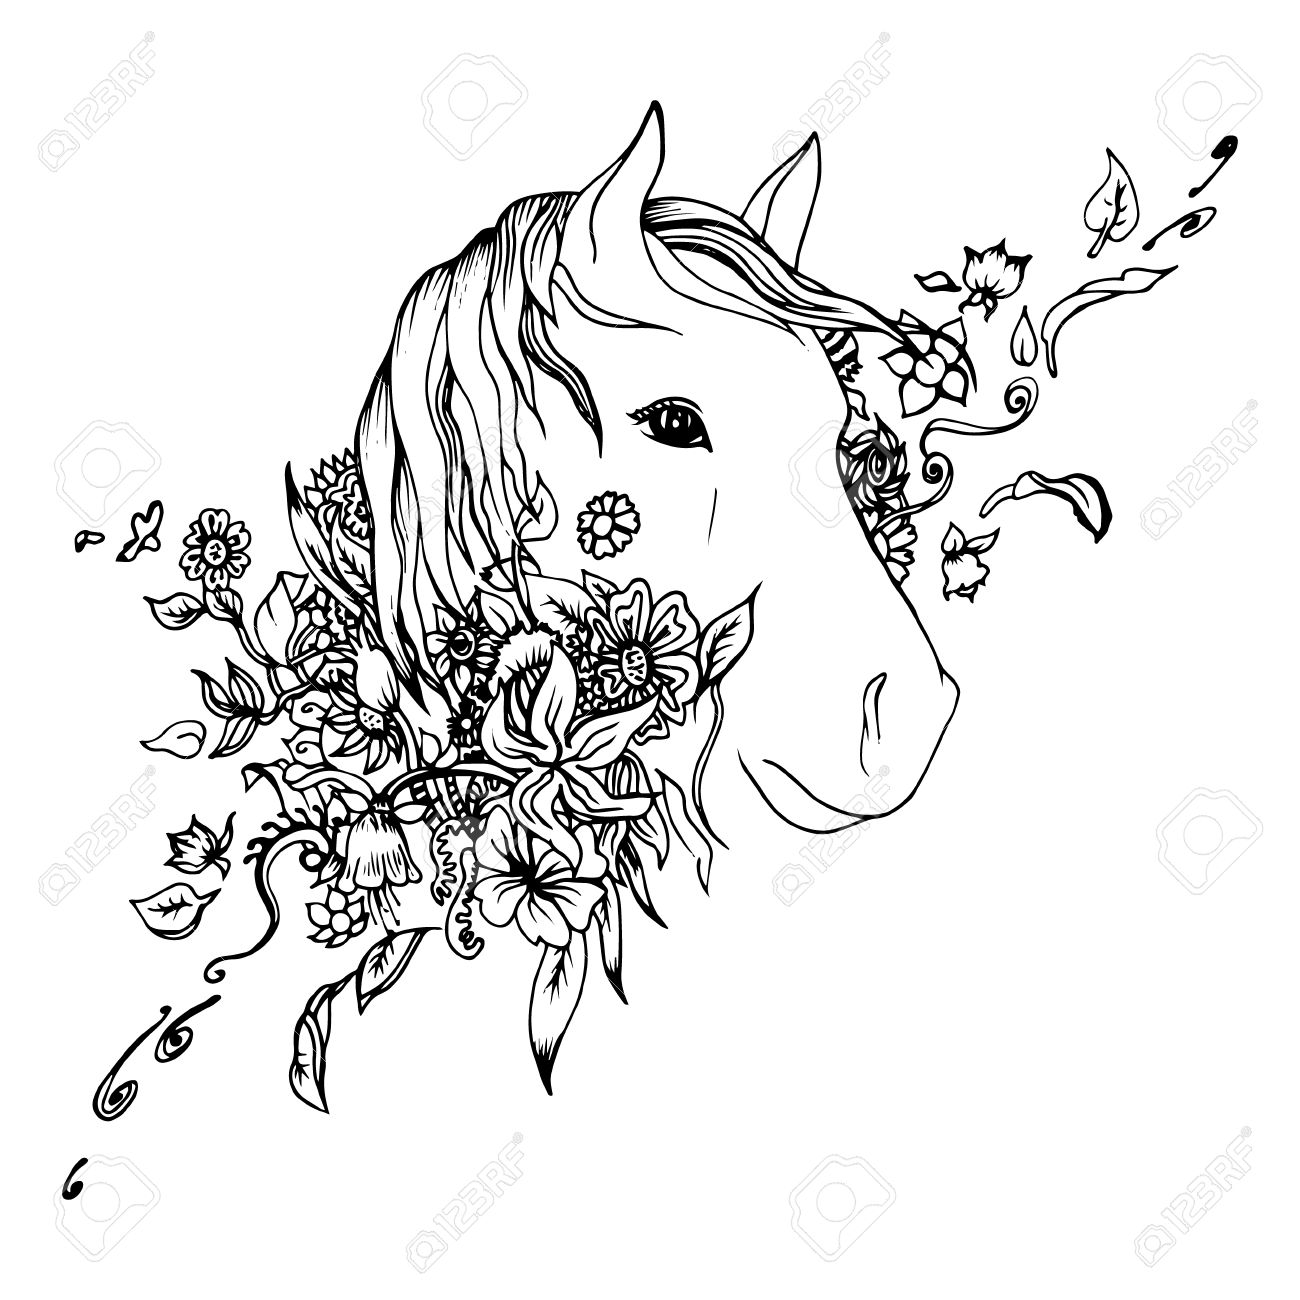 1300x1300 Black And White Horse Head Isolated. Engraving Sketch. Abstract